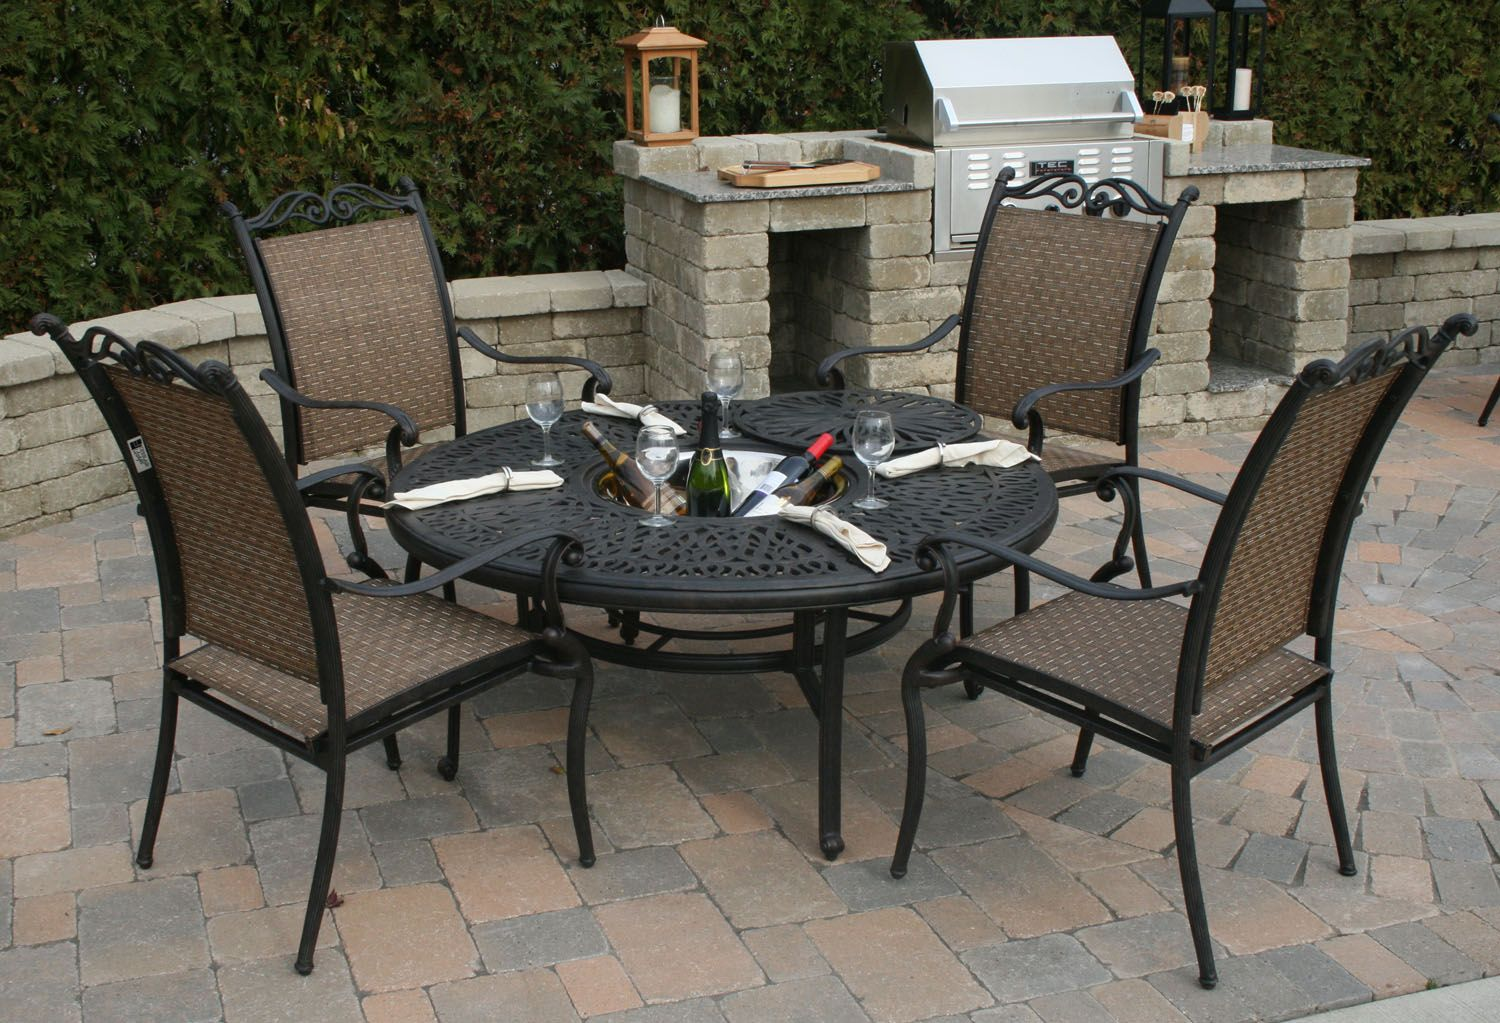 Trends and different styles of patio furniture